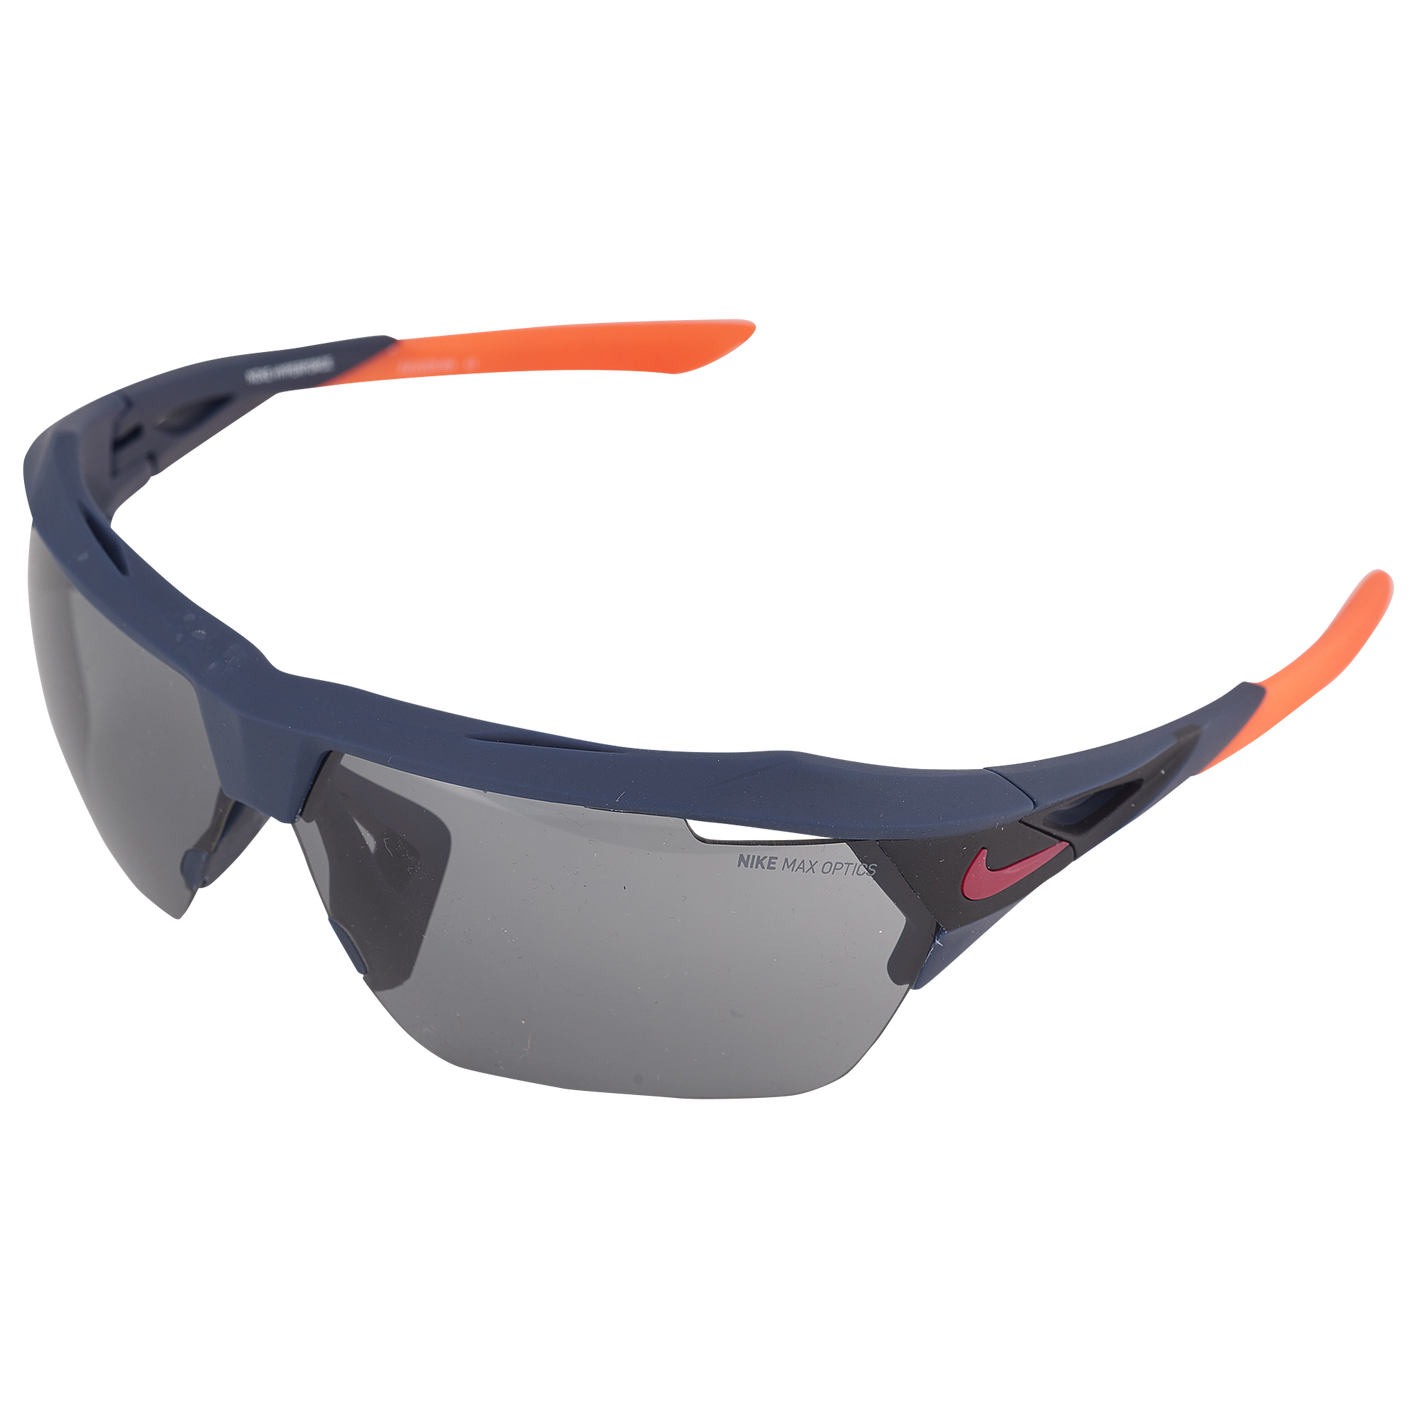 a7c1abf1317 Nike Hyperforce M Sunglasses - Baseball - Accessories - Obsidian ...